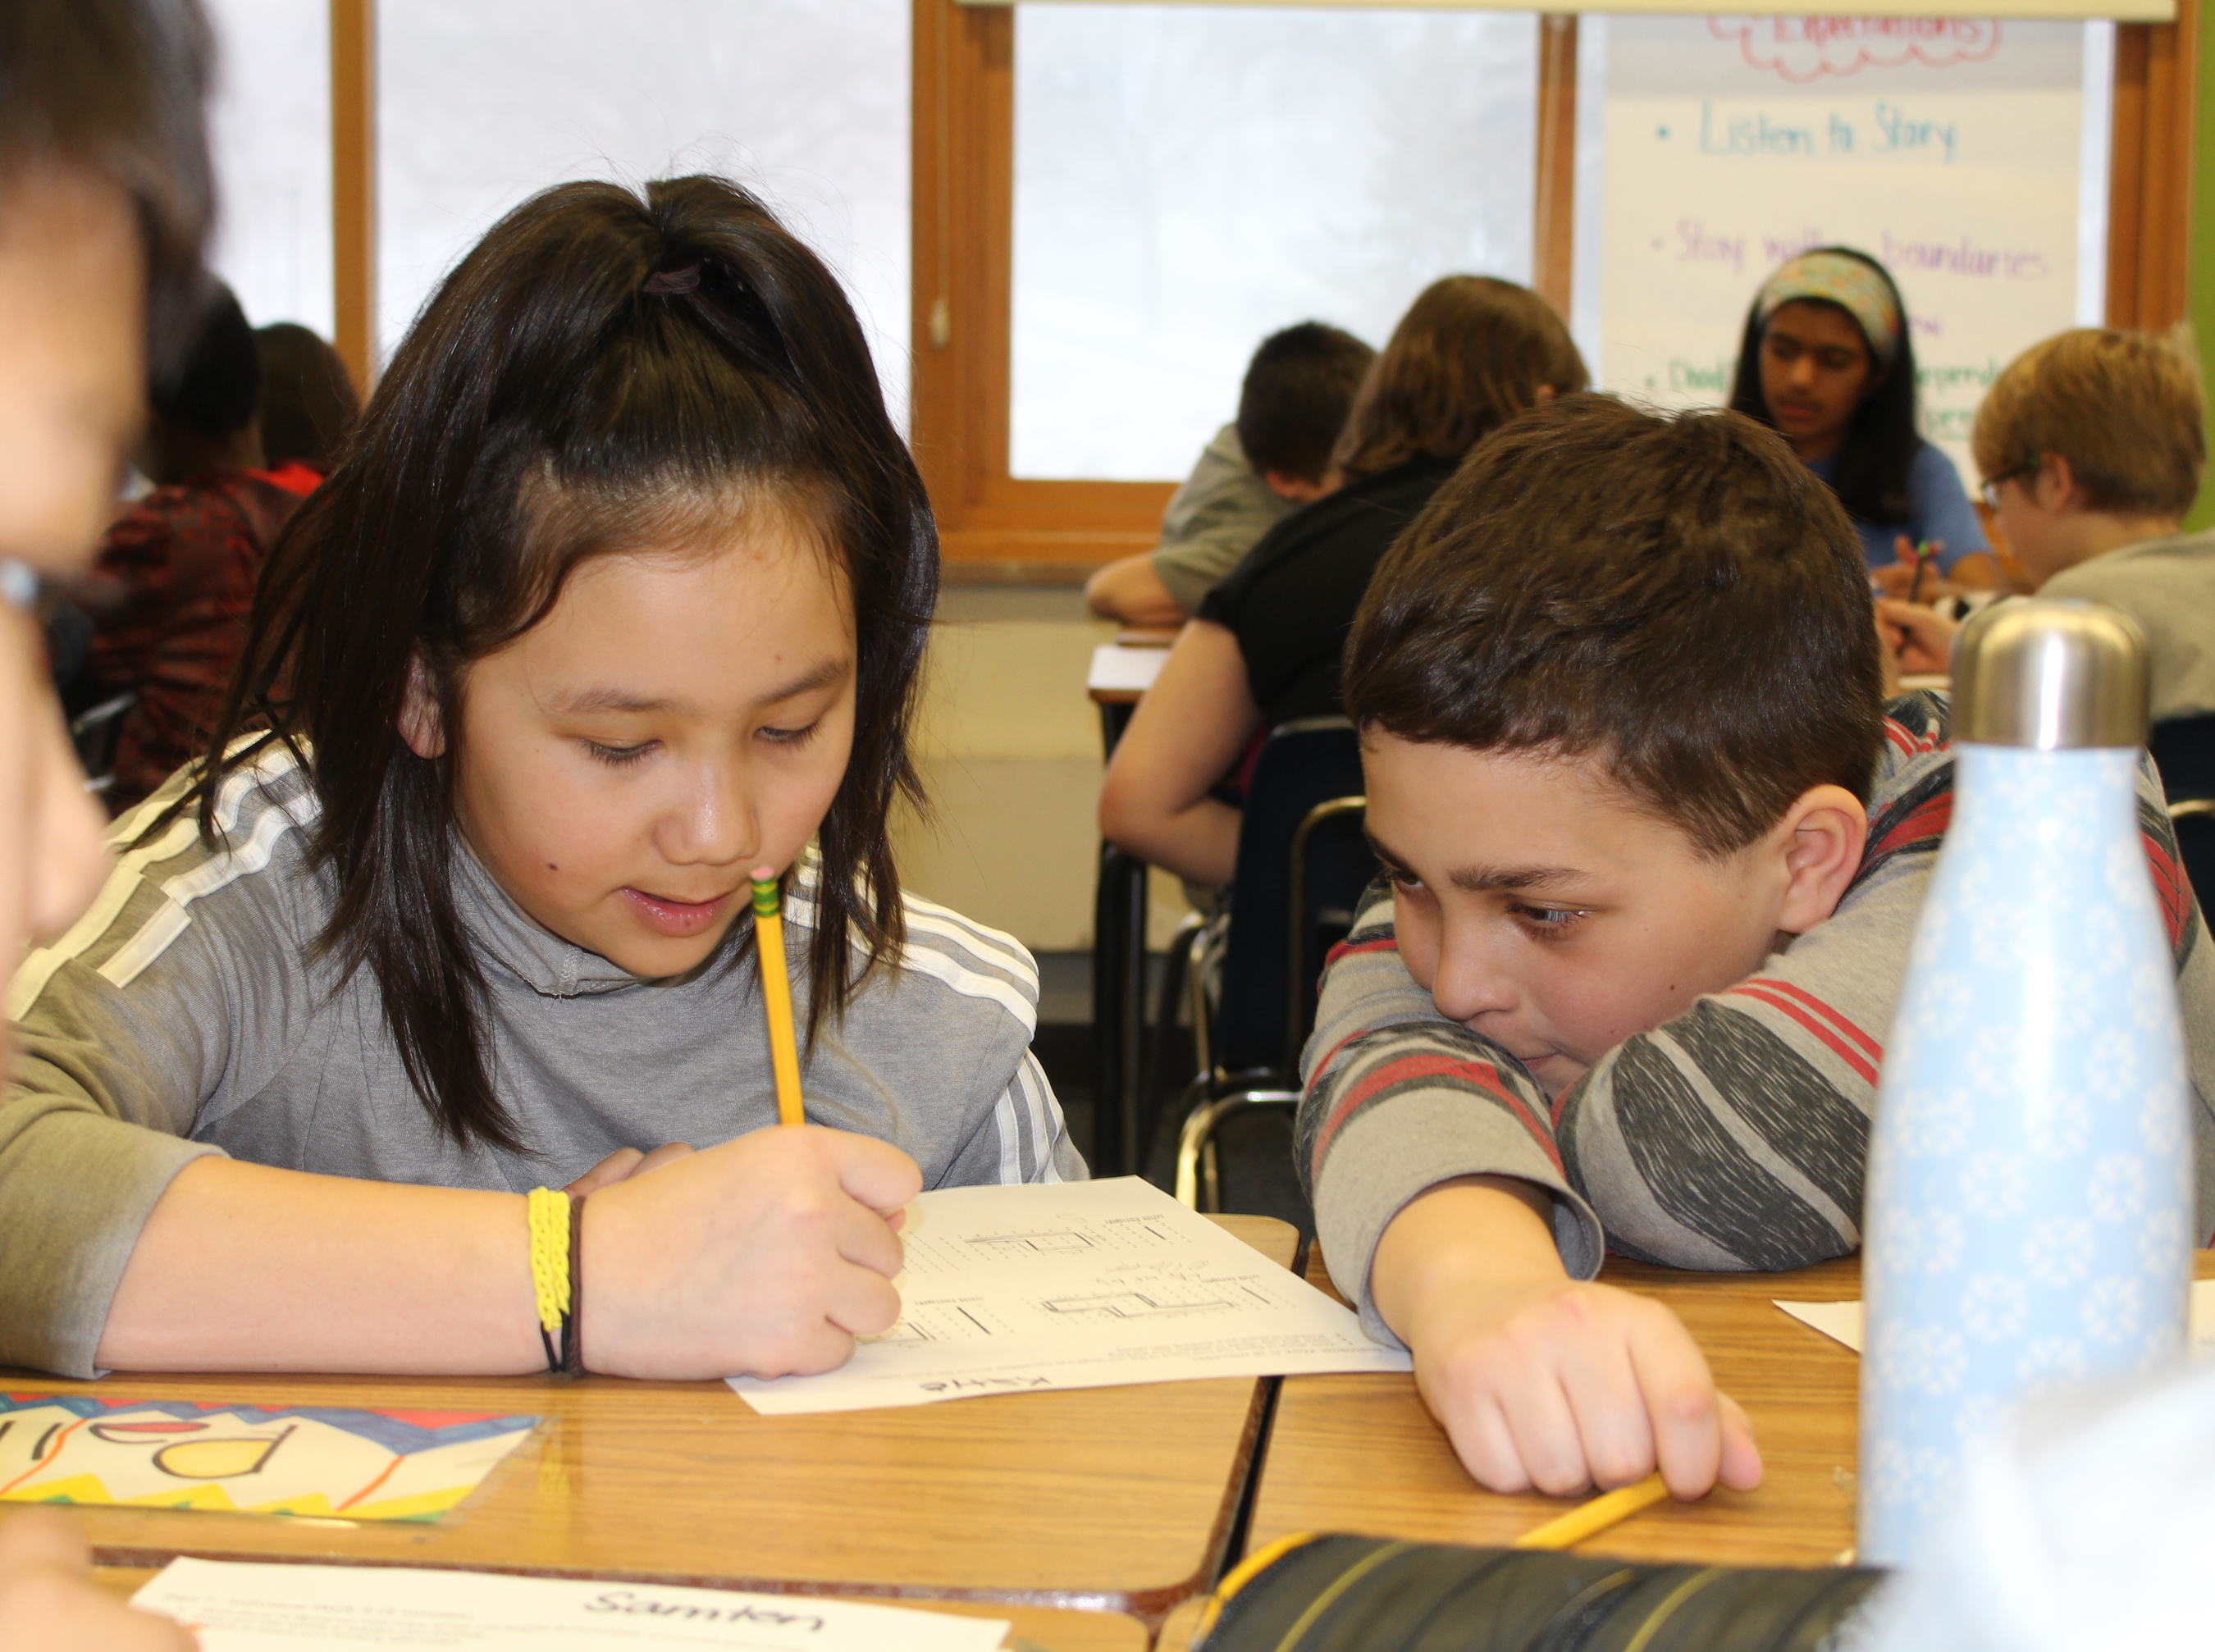 Students in Rivard-Johnson's class work together to solve a worksheet during a recent math lesson. Photo by Nate Gotlieb